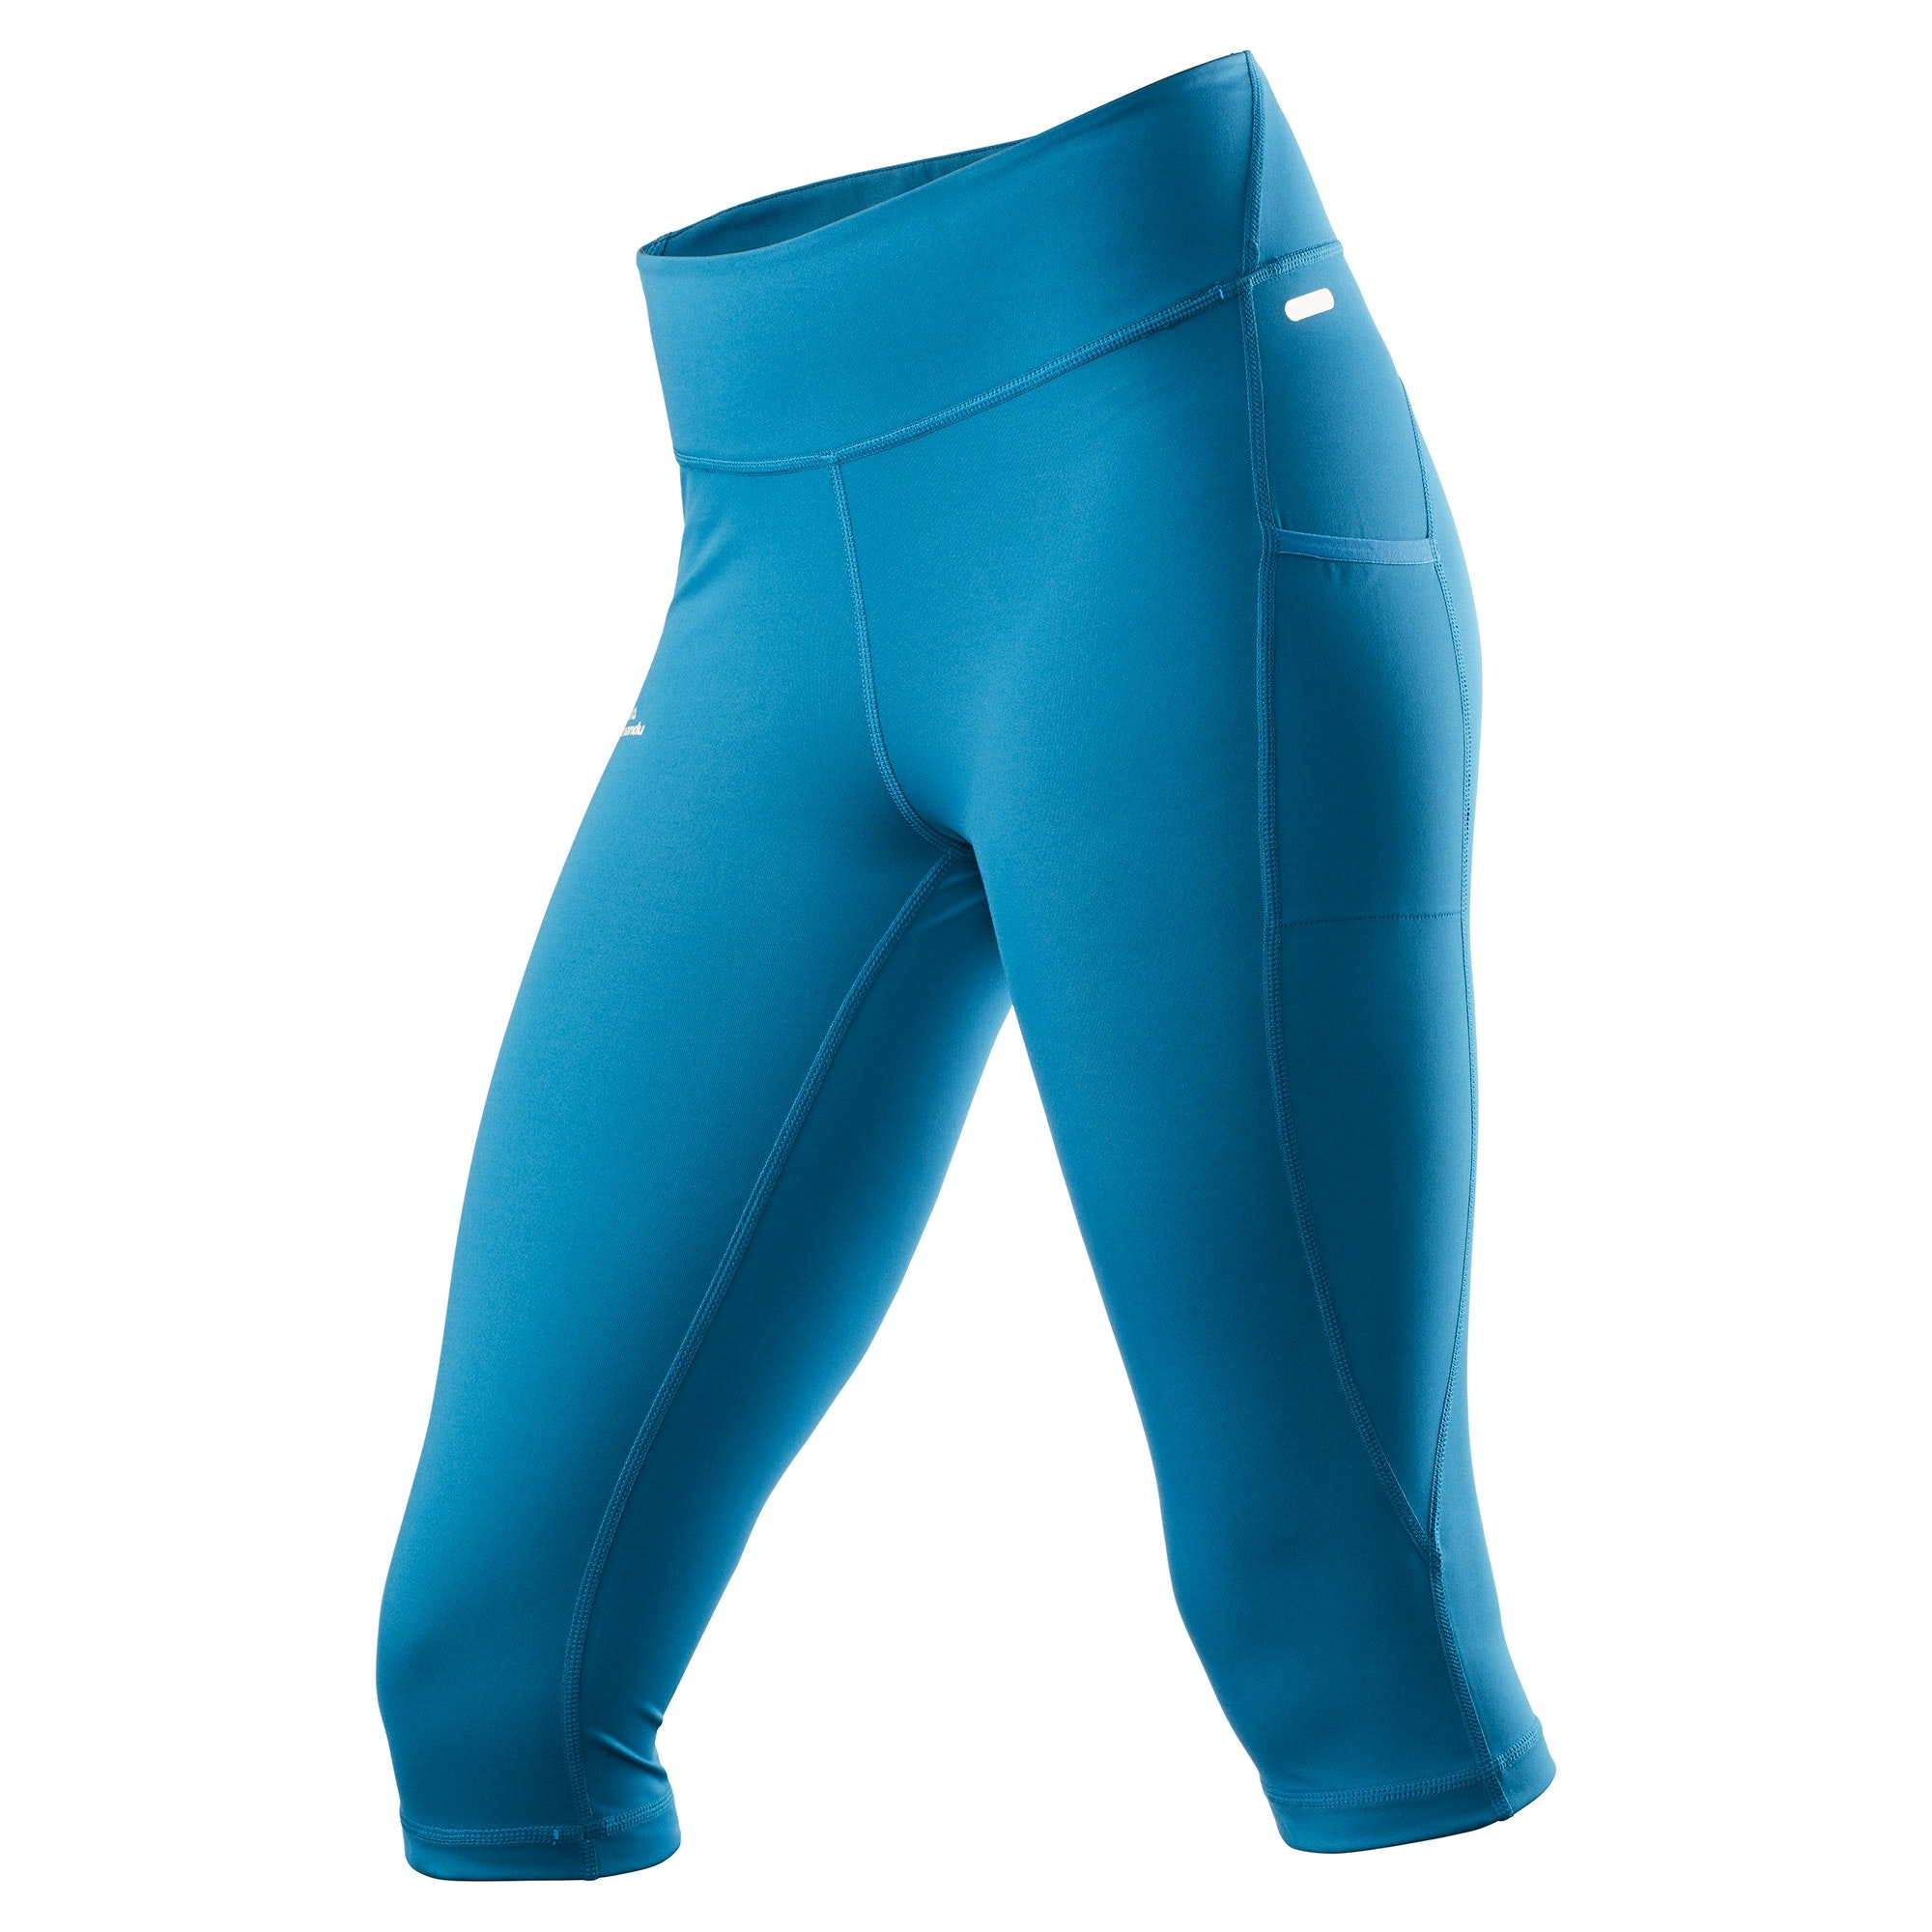 NEW-Kathmandu-Zeolite-Women-039-s-Active-Performance-3-4-Leggings thumbnail 14